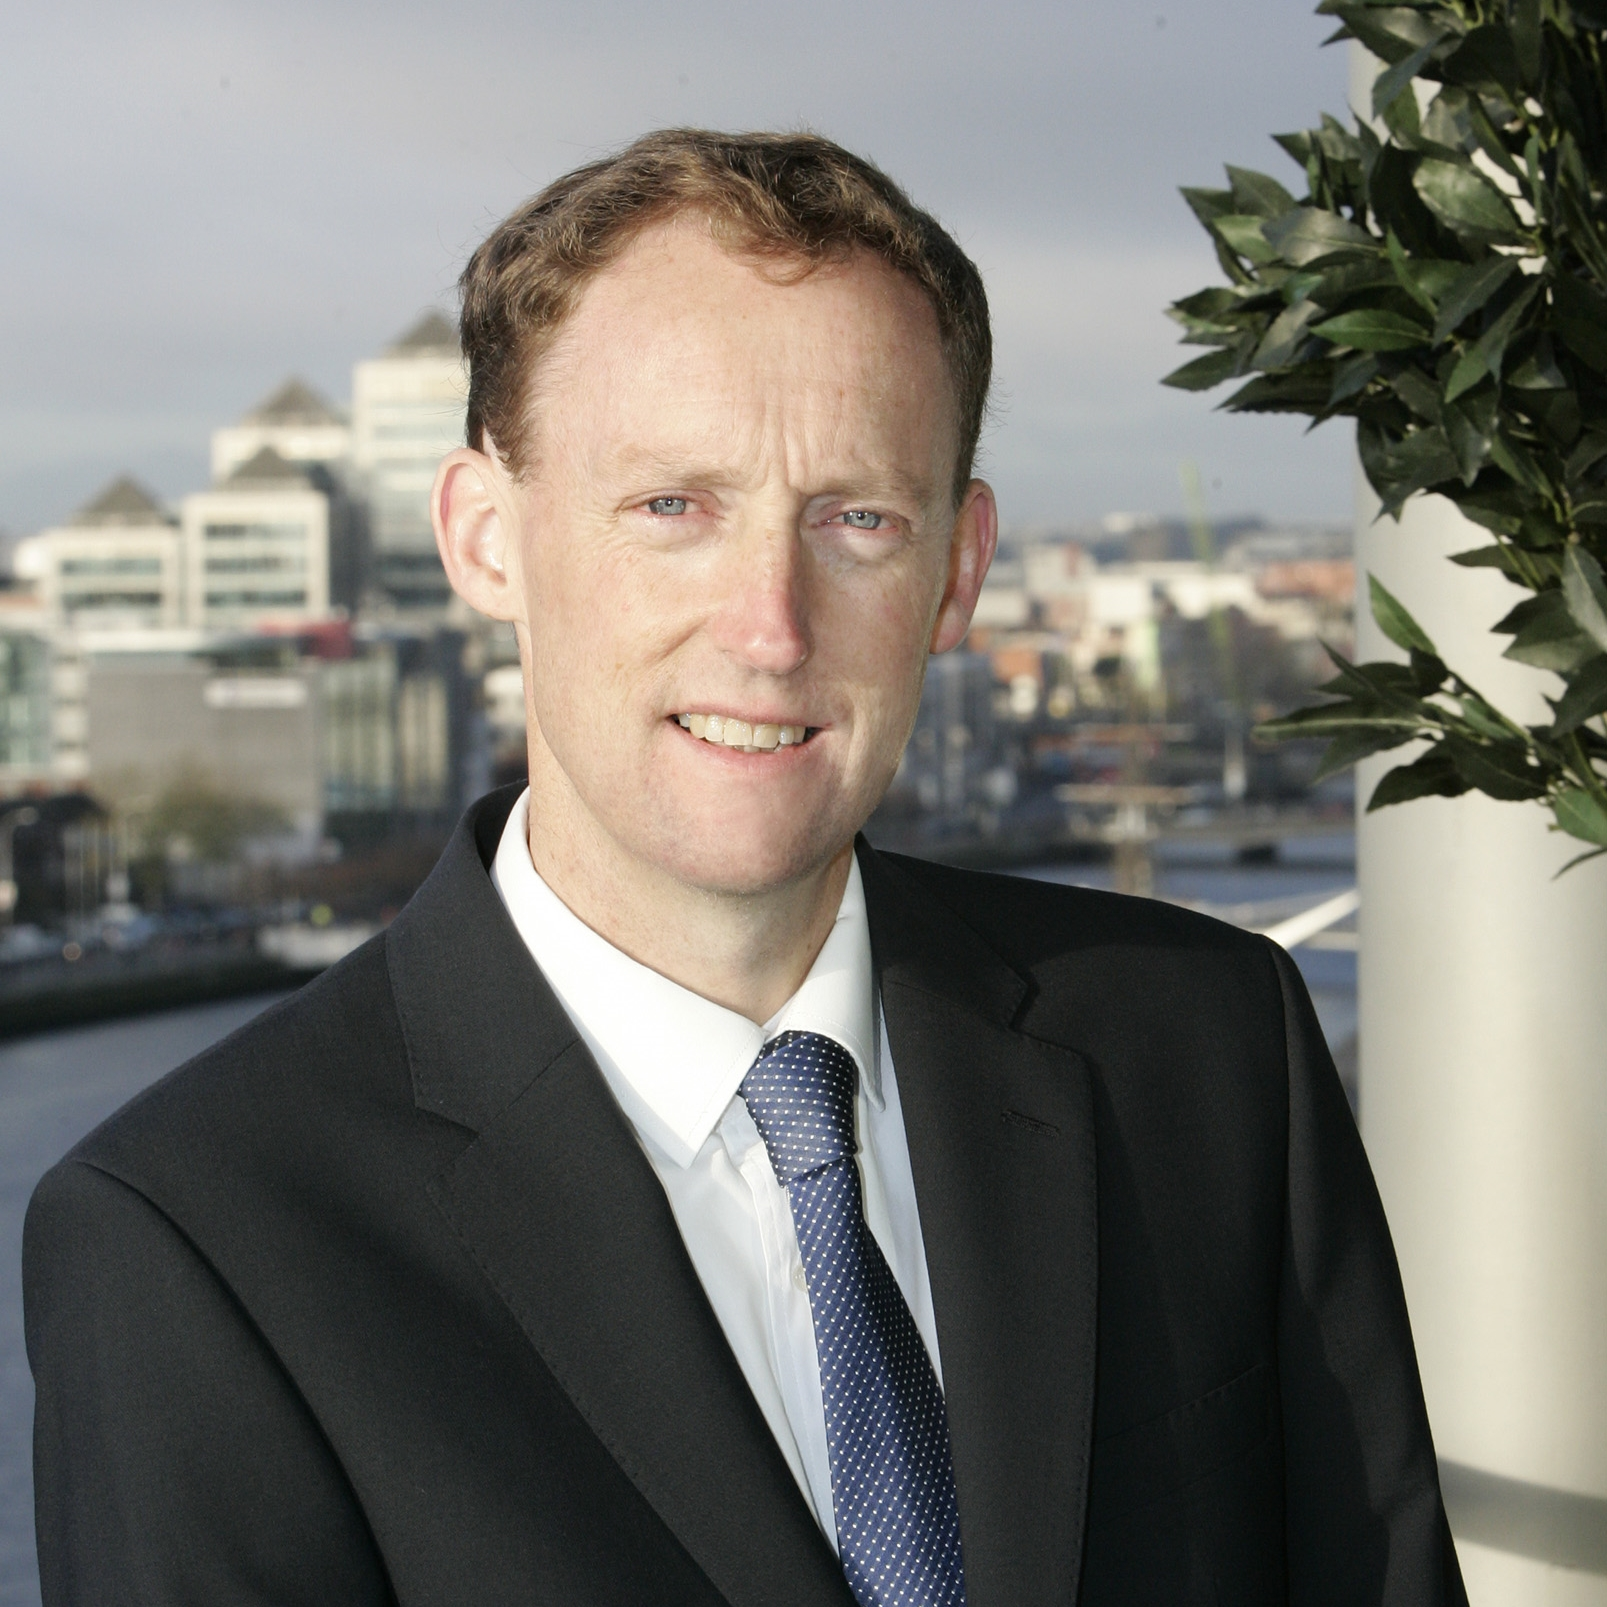 Barry Andrews – Director General, Institute of International and European Affairs